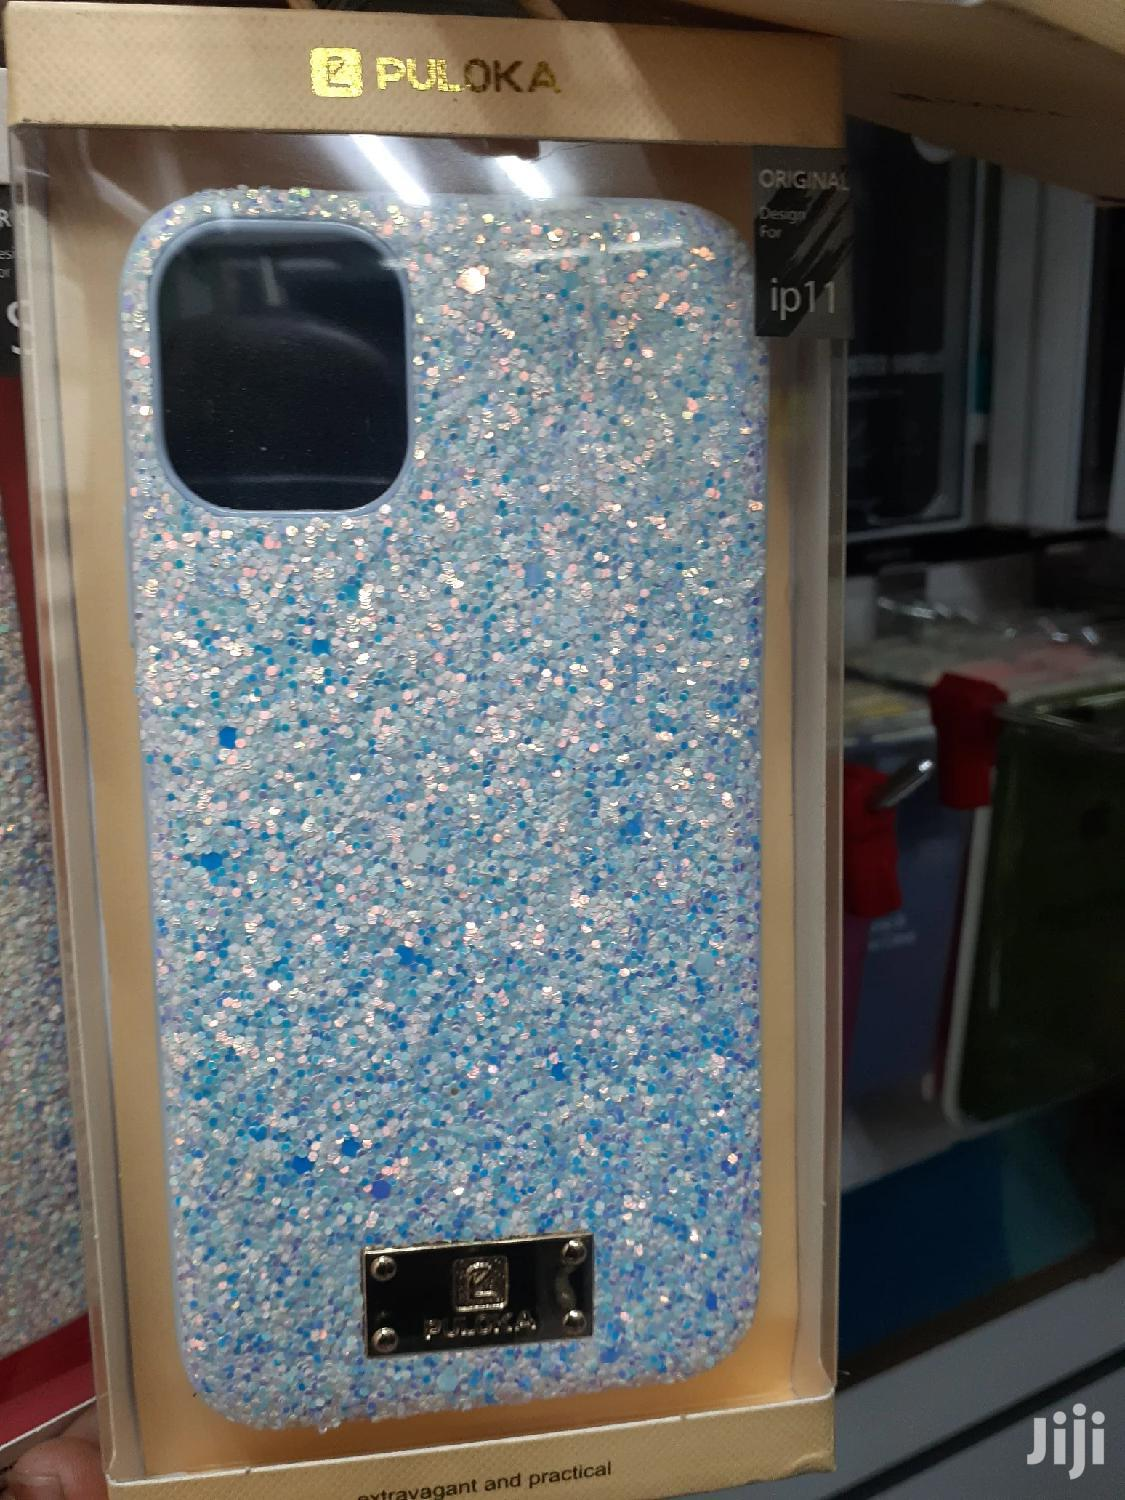 Puloka Shining Covers | Accessories for Mobile Phones & Tablets for sale in Nairobi Central, Nairobi, Kenya